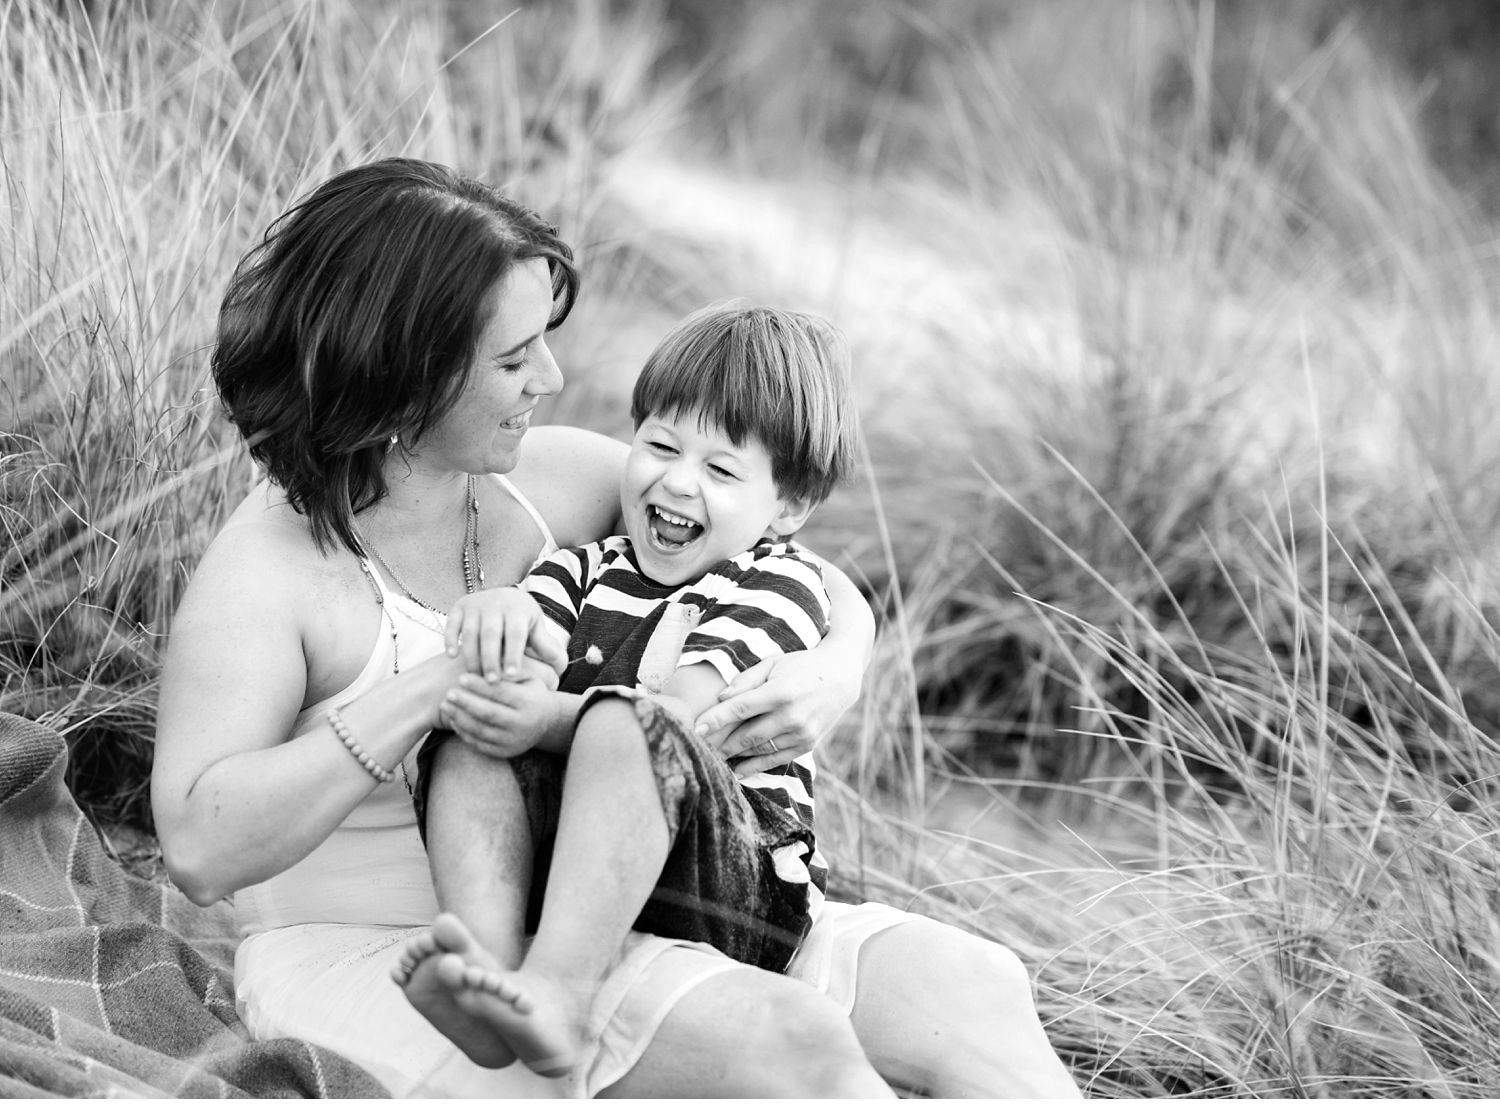 Family-photography-lifestyle-session-city-casey-melbourne.jpg